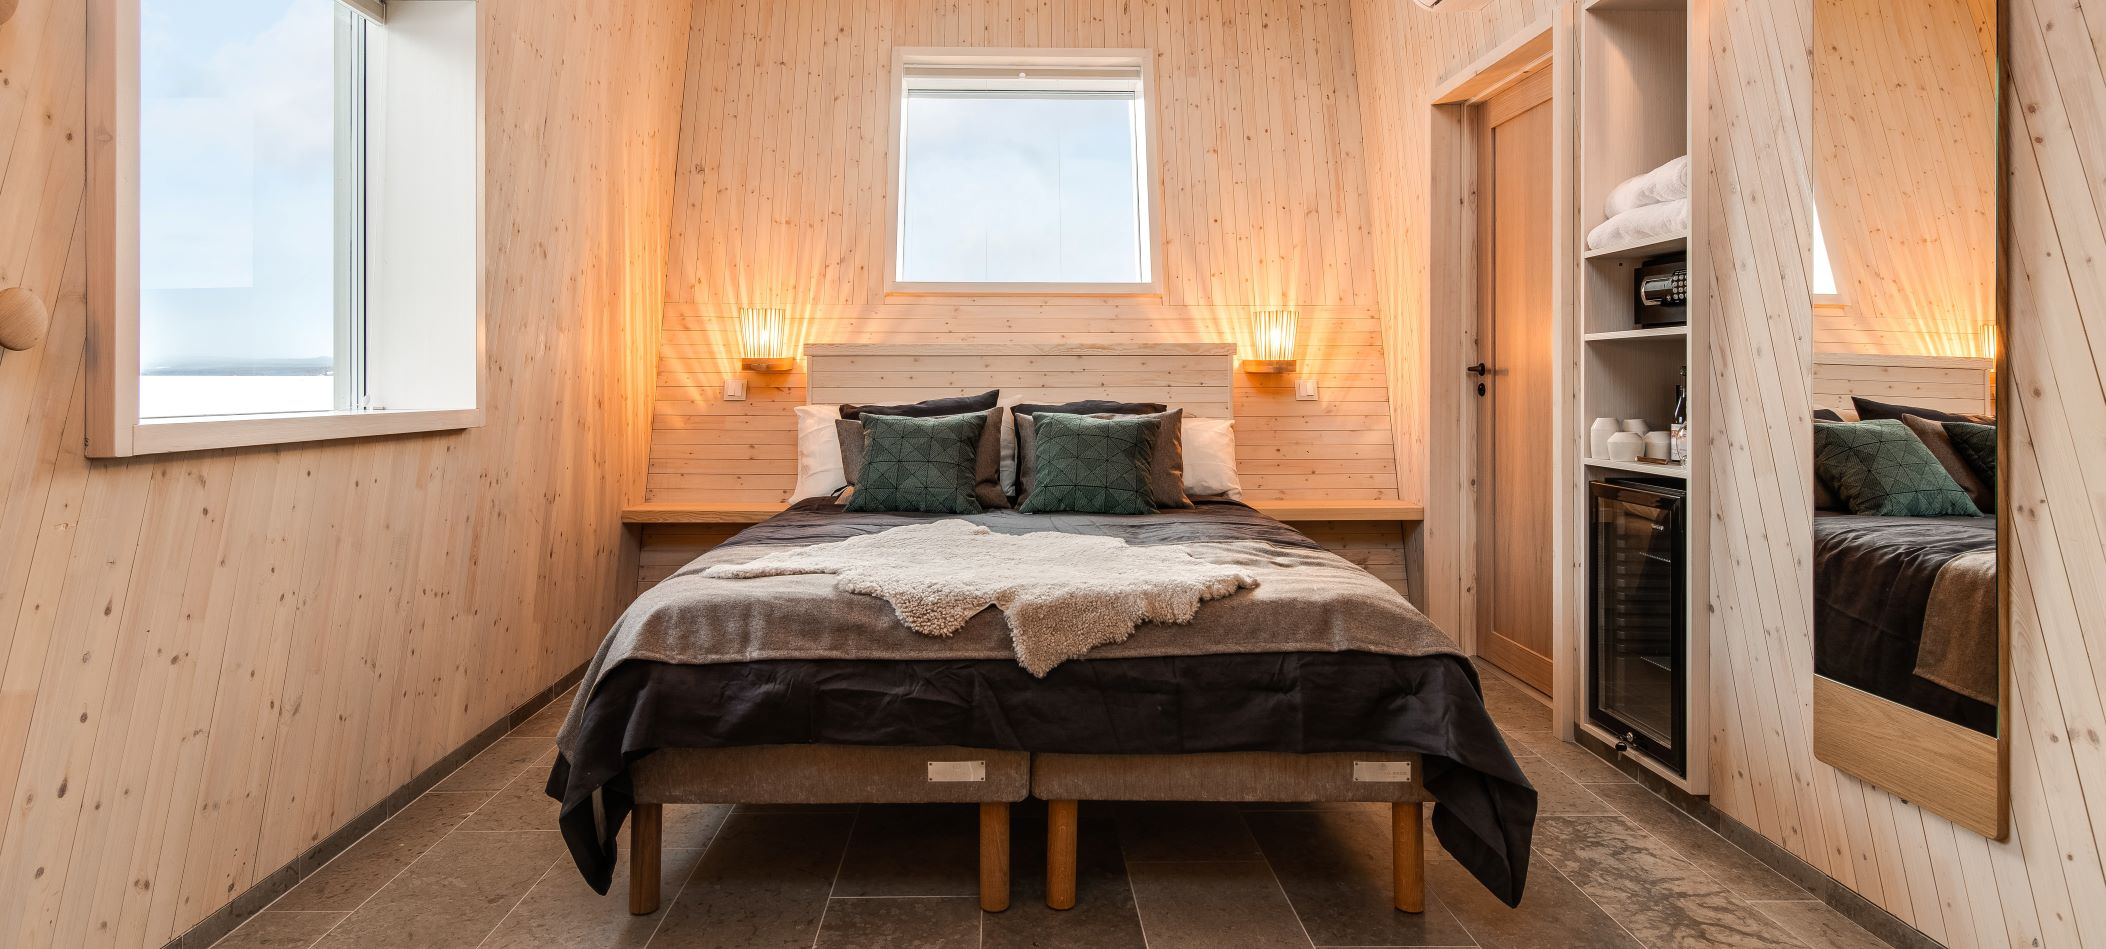 arctic-bath-water-cabin-bedroom